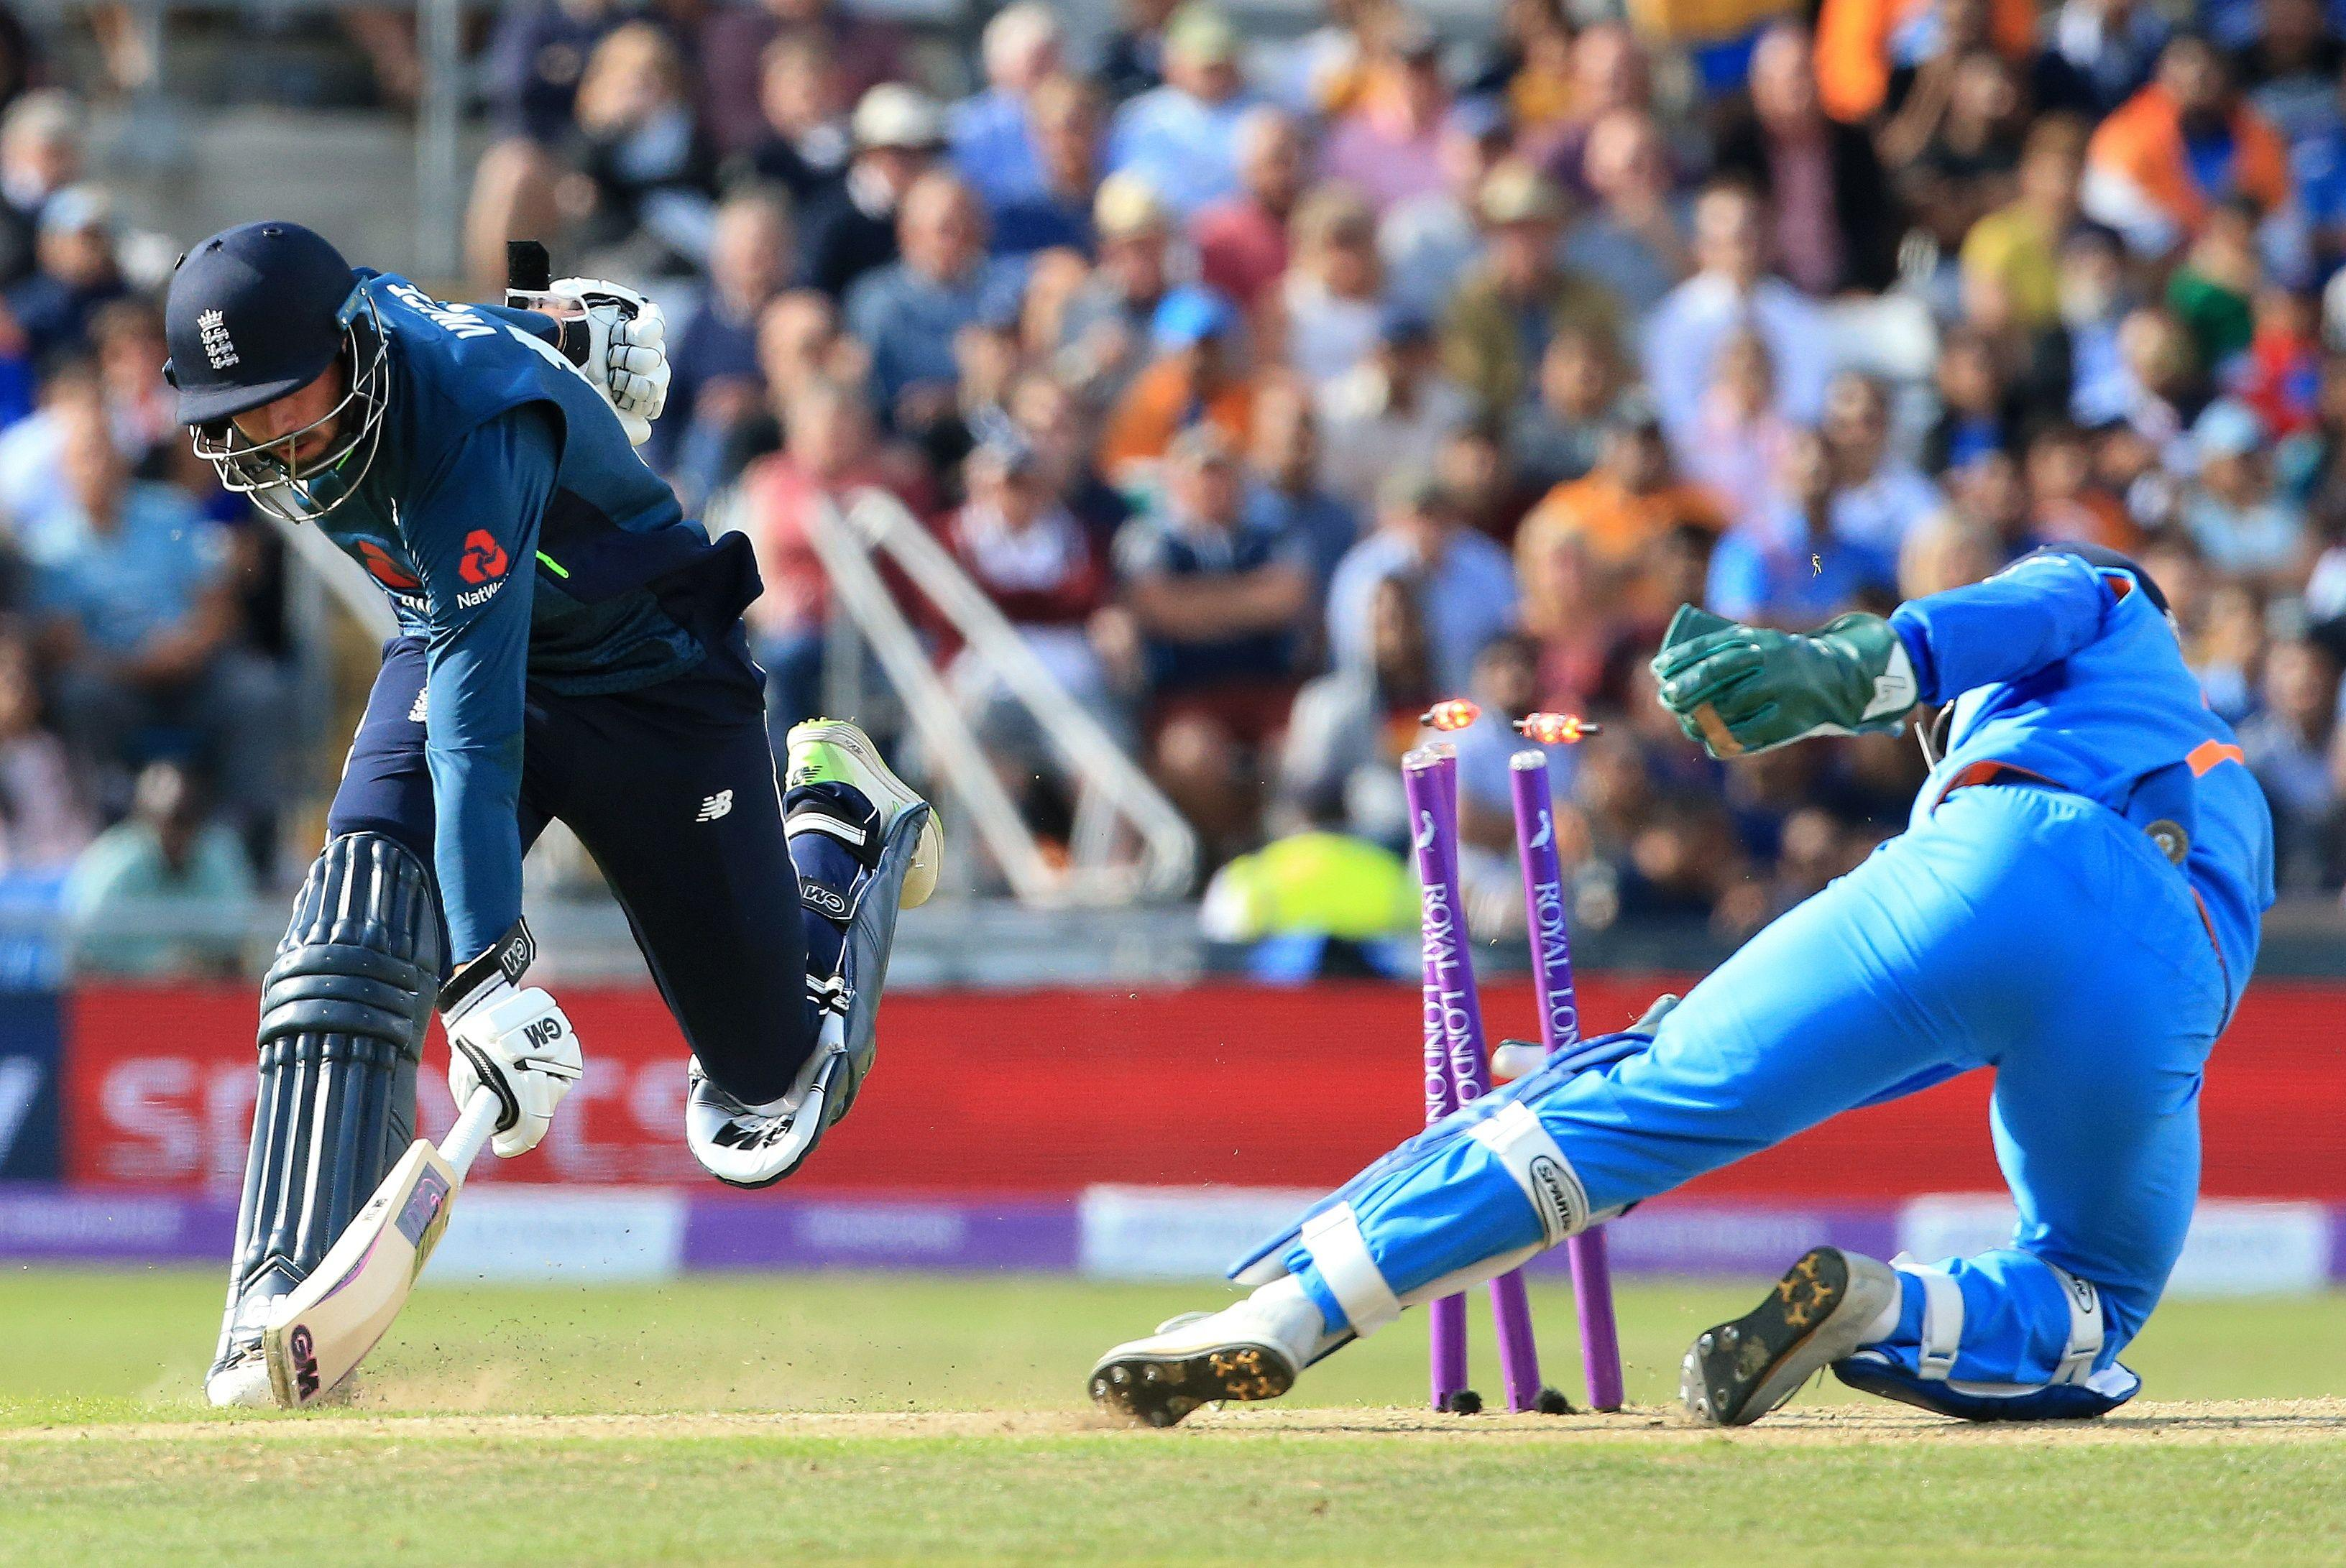 James Vince looked typically stylish but was run out for 27